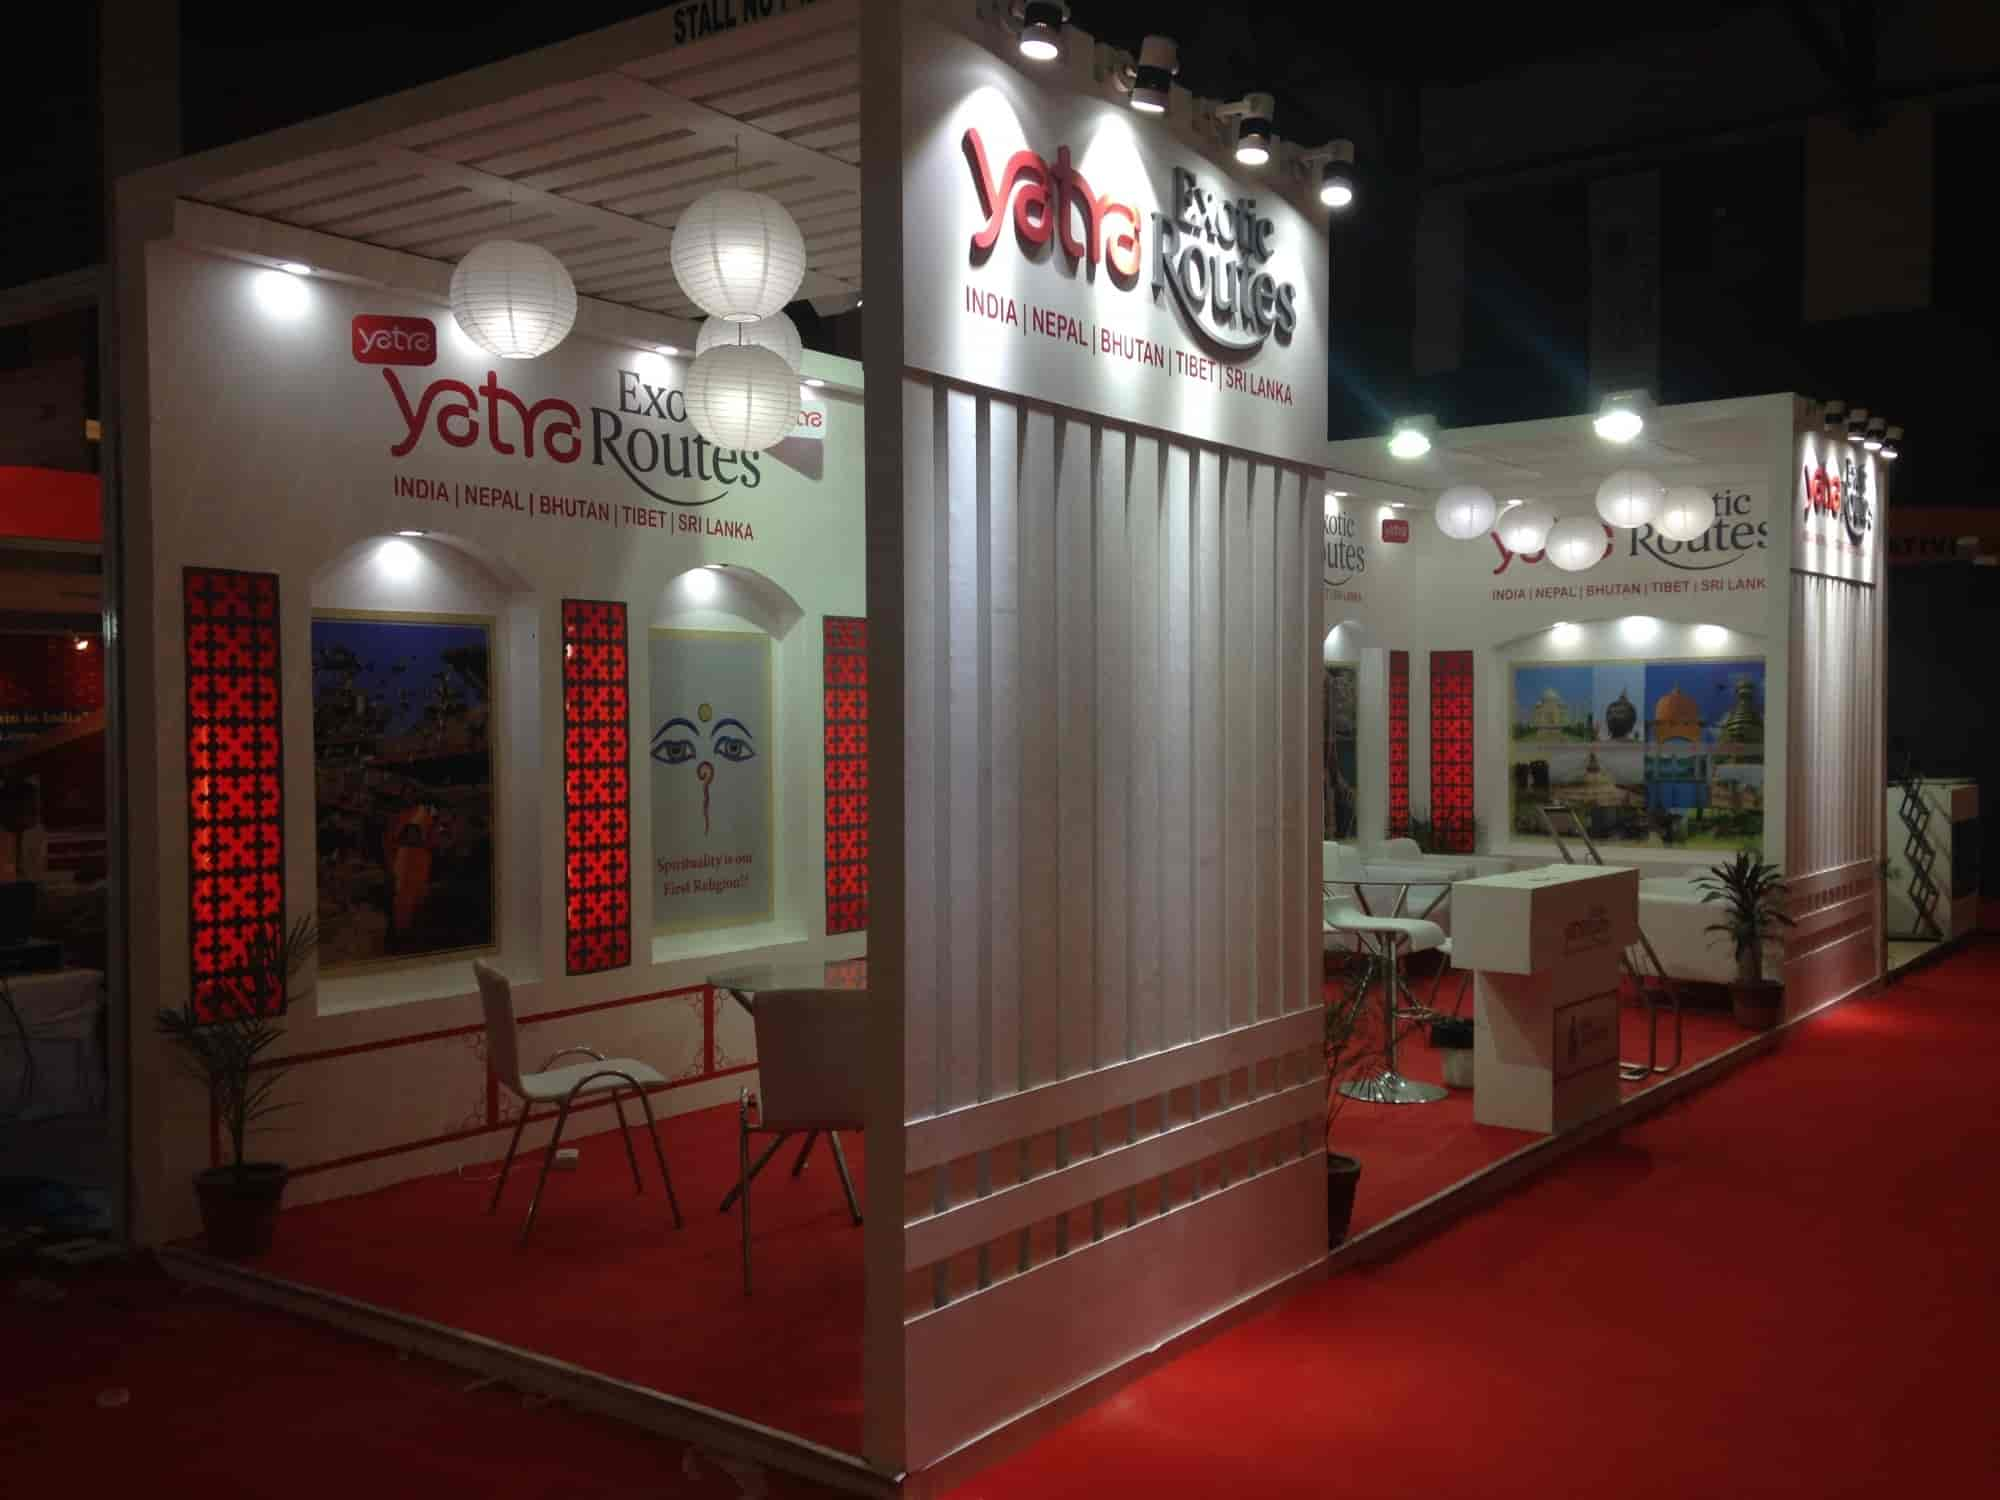 Exhibition Stall Builders In Sri Lanka : Buzz matrix india photos rithala delhi pictures & images gallery